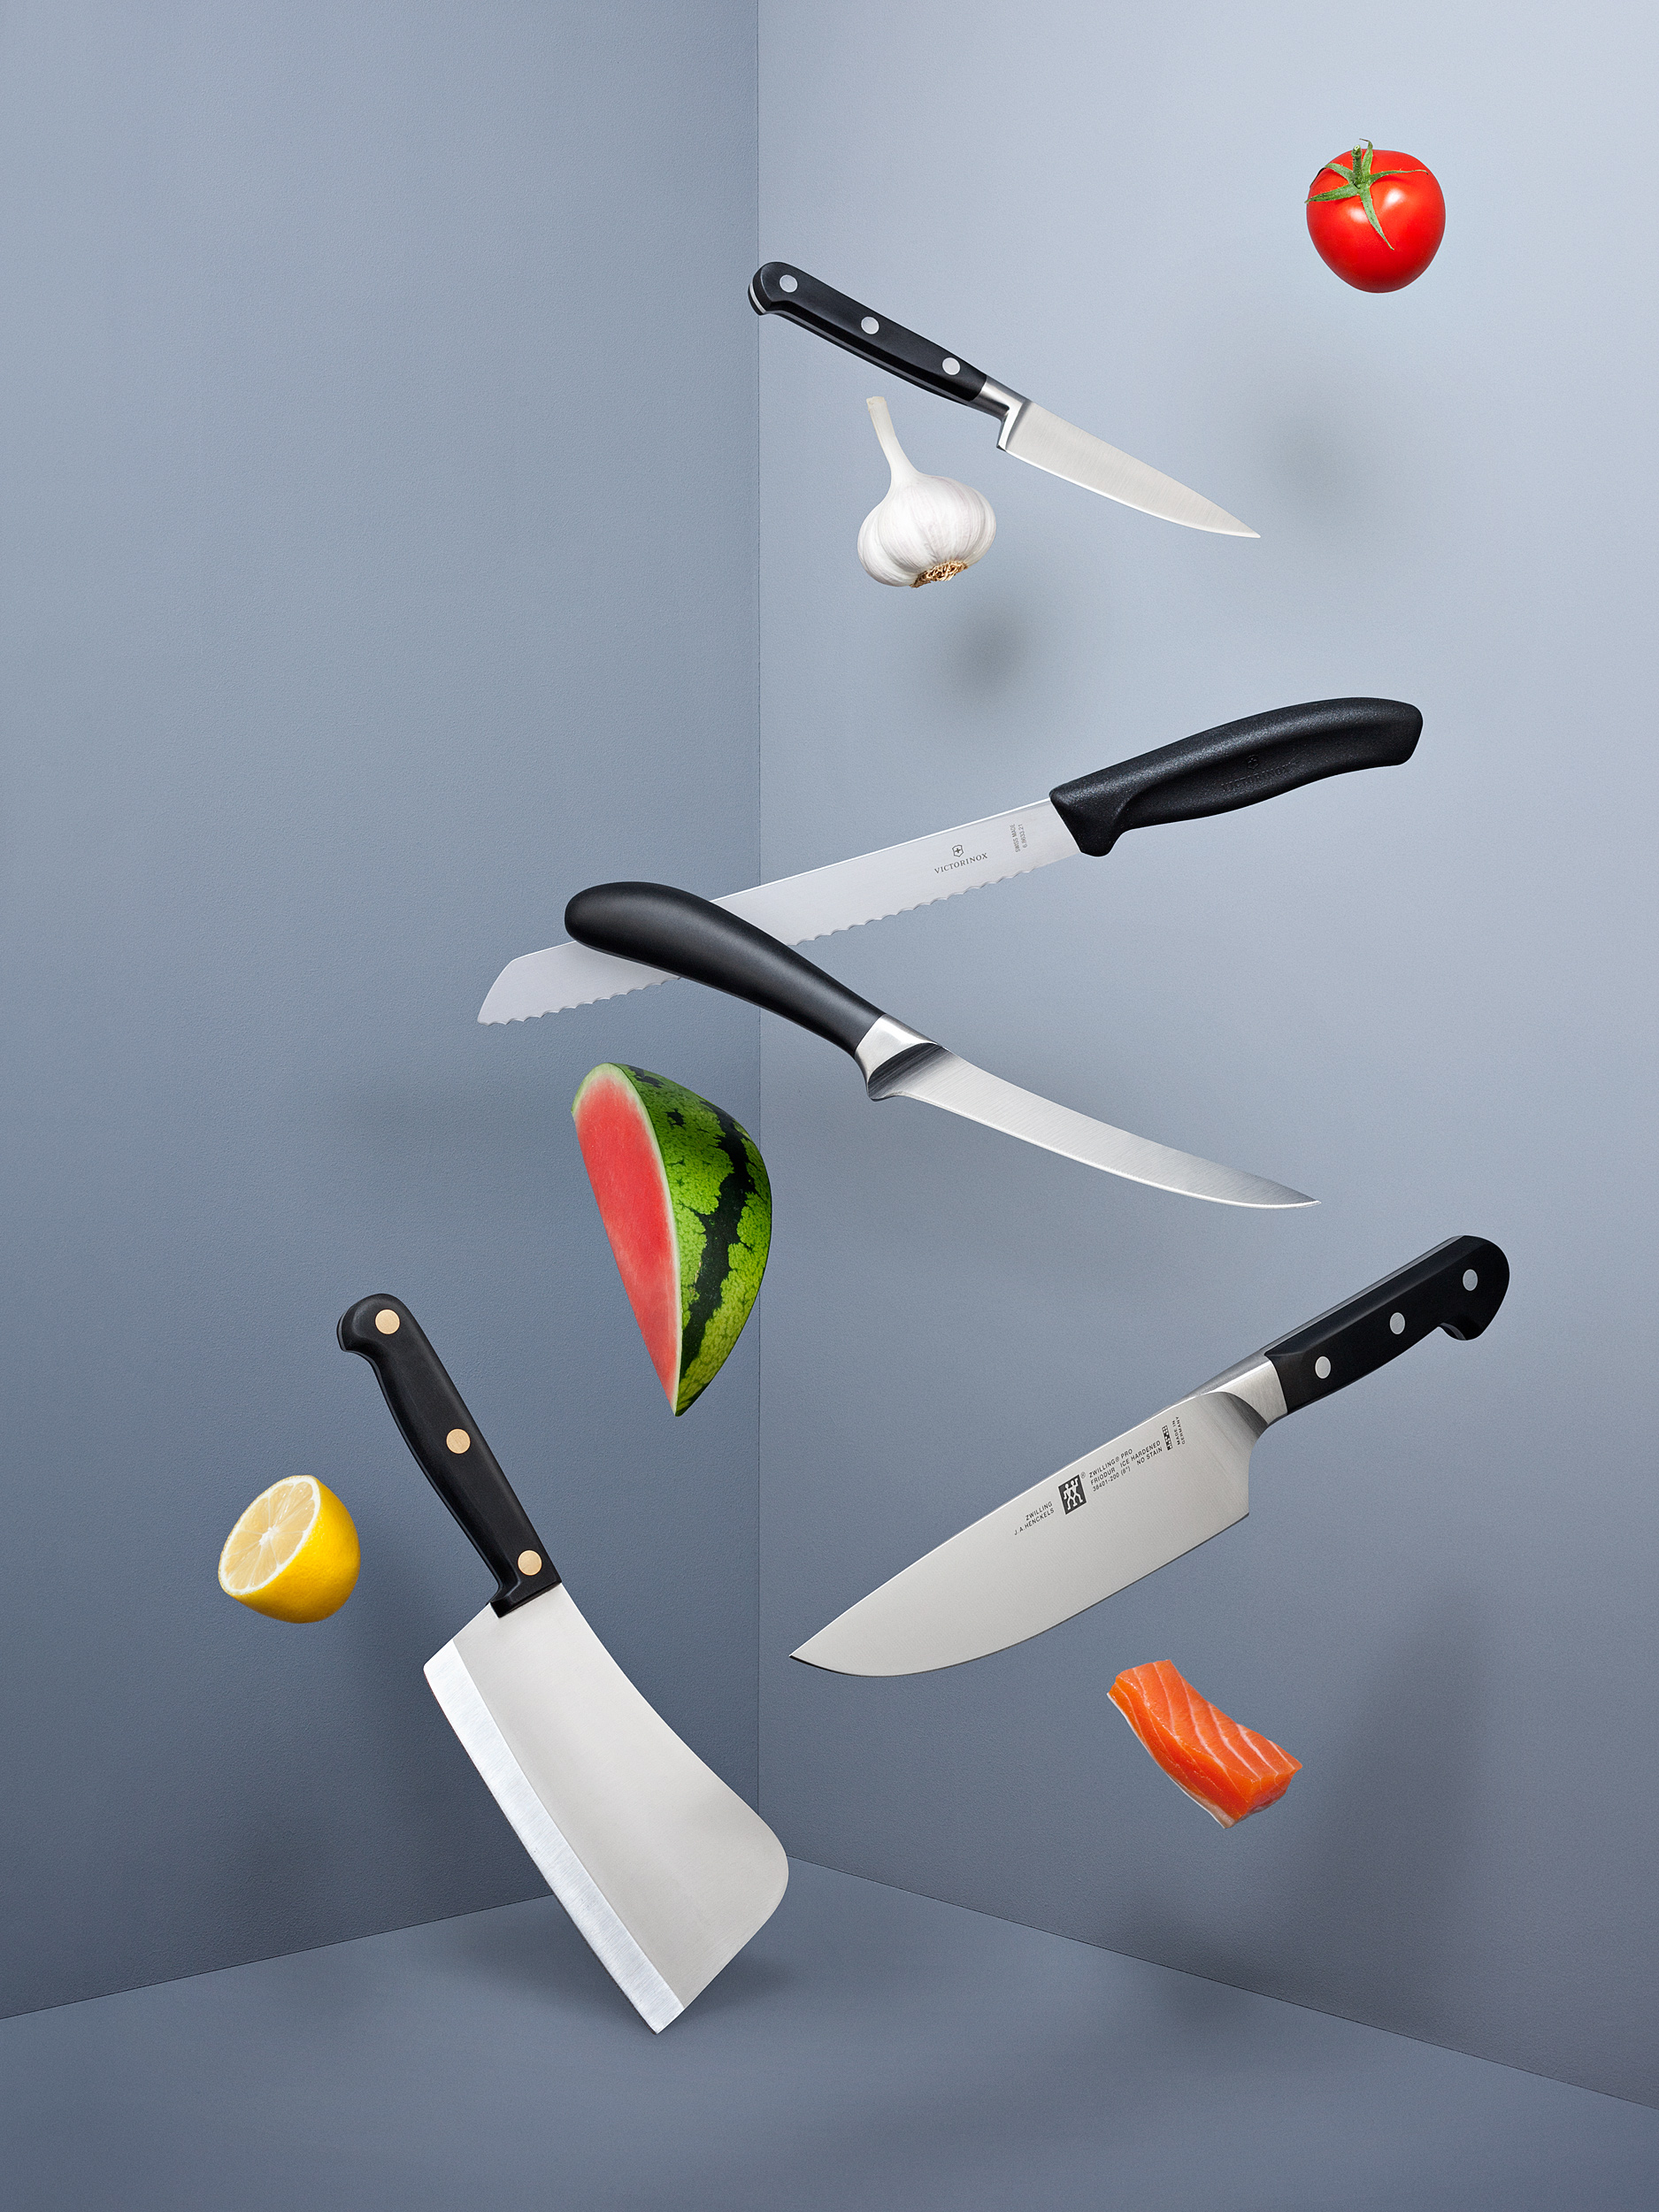 robvanderplank-kitchenware-test-1-update-v1.jpg